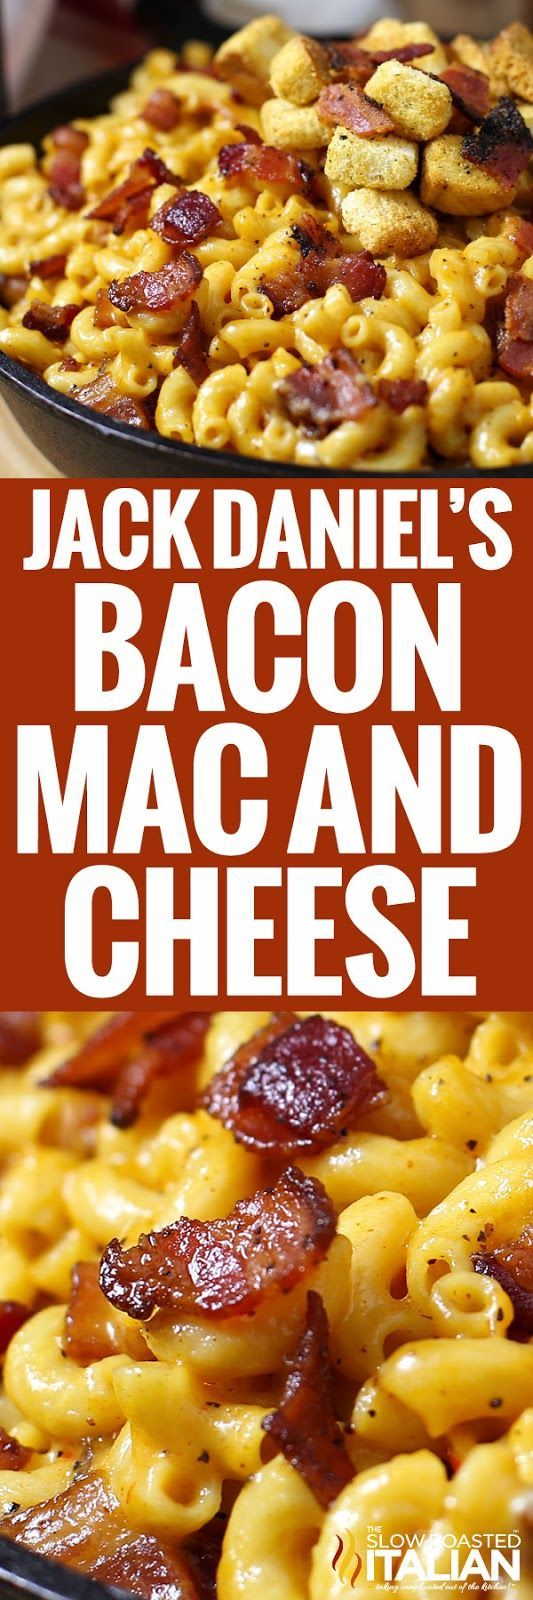 Jack Daniels Smoky Bacon Mac and Cheese (With Video)